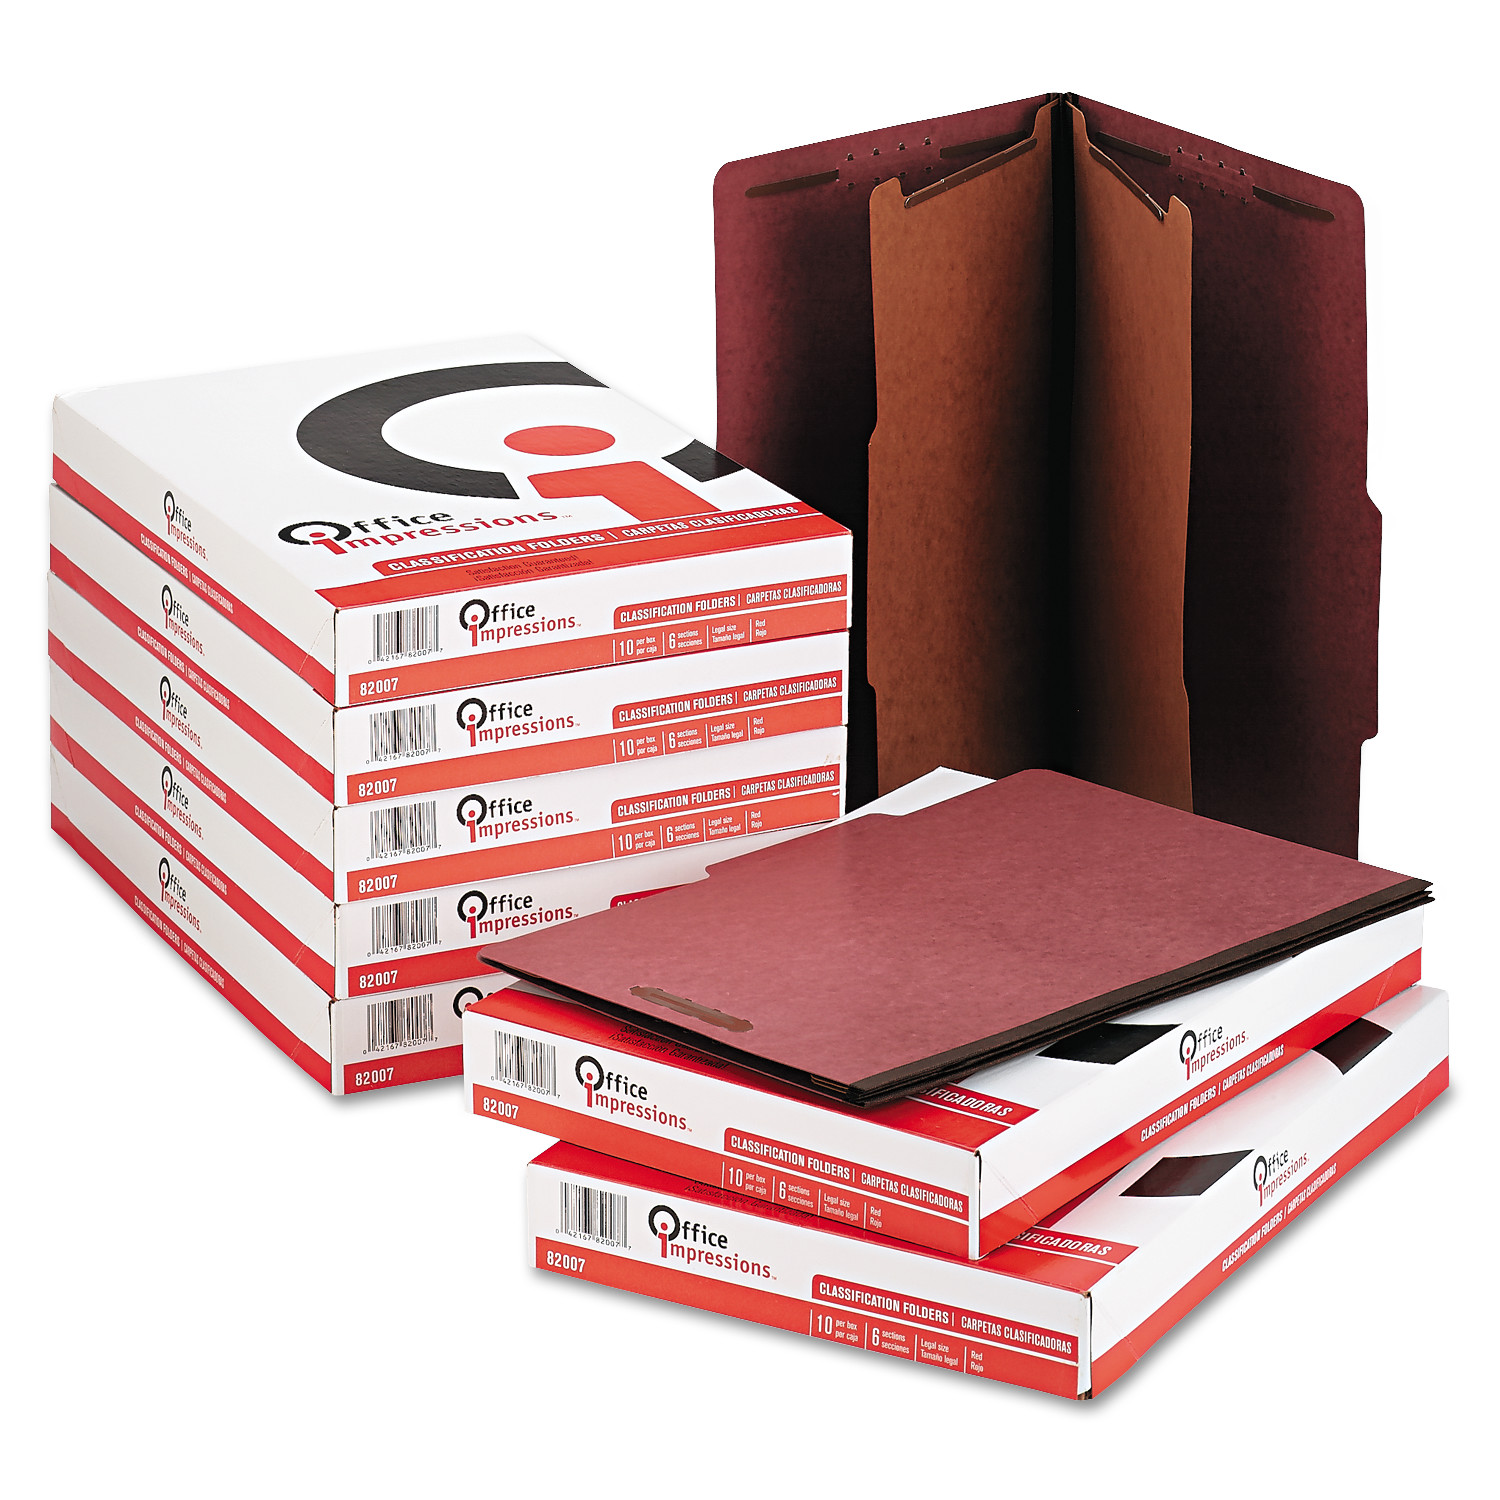 Office Impressions Pressboard Classification Folder, Legal, Six-Section, Red, 10/Box -OFF82007